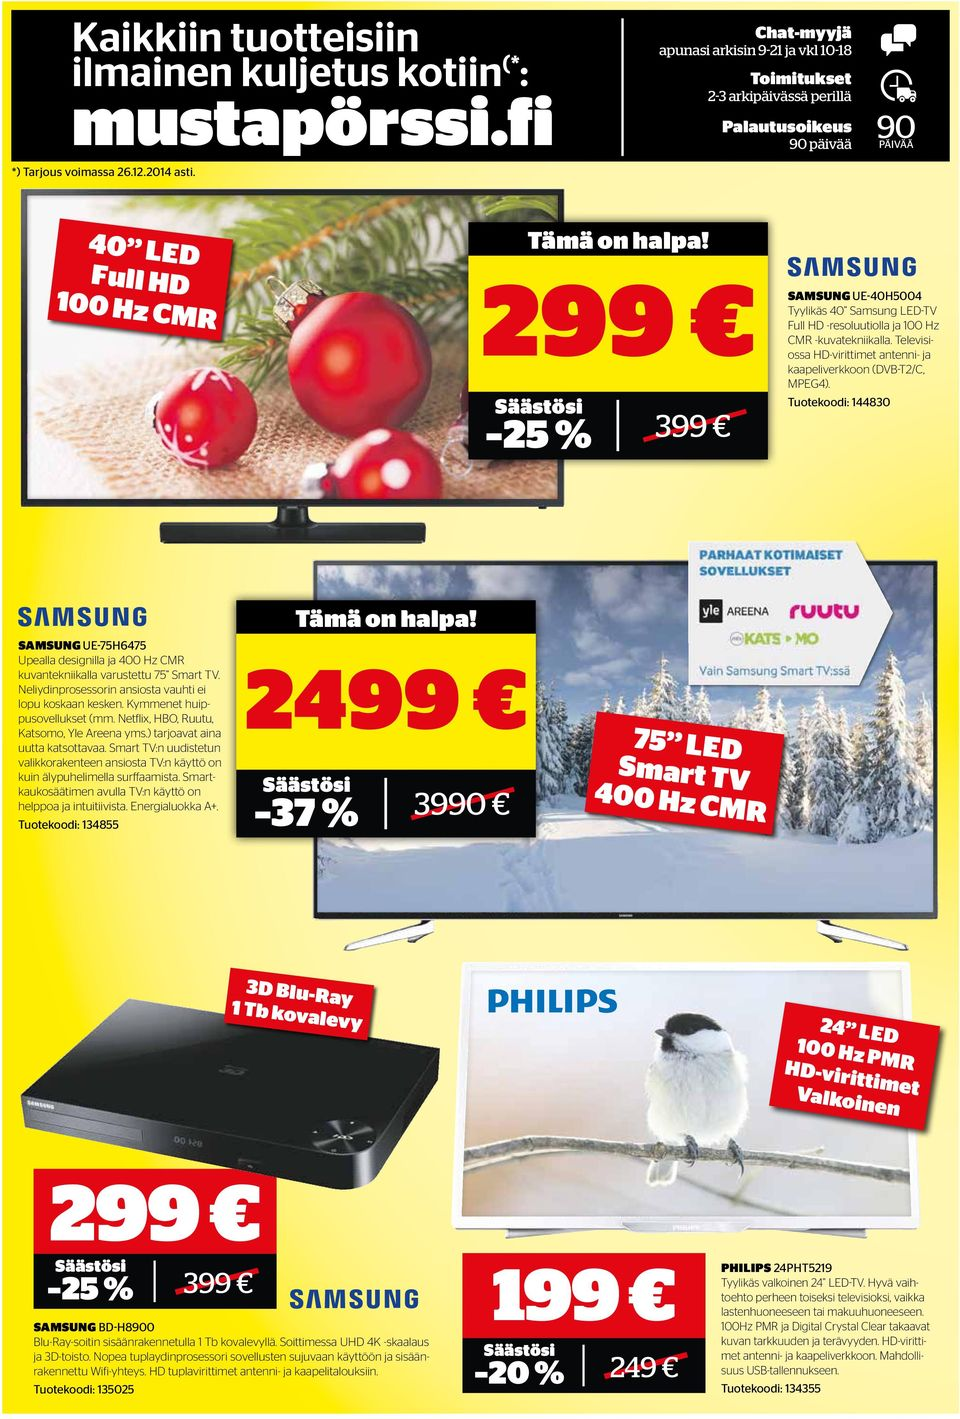 40 LED Full HD 100 Hz CMR 299 25 % 399 SAMSUNG UE-40H5004 Tyylikäs 40 Samsung LED-TV Full HD -resoluutiolla ja 100 Hz CMR -kuvatekniikalla.